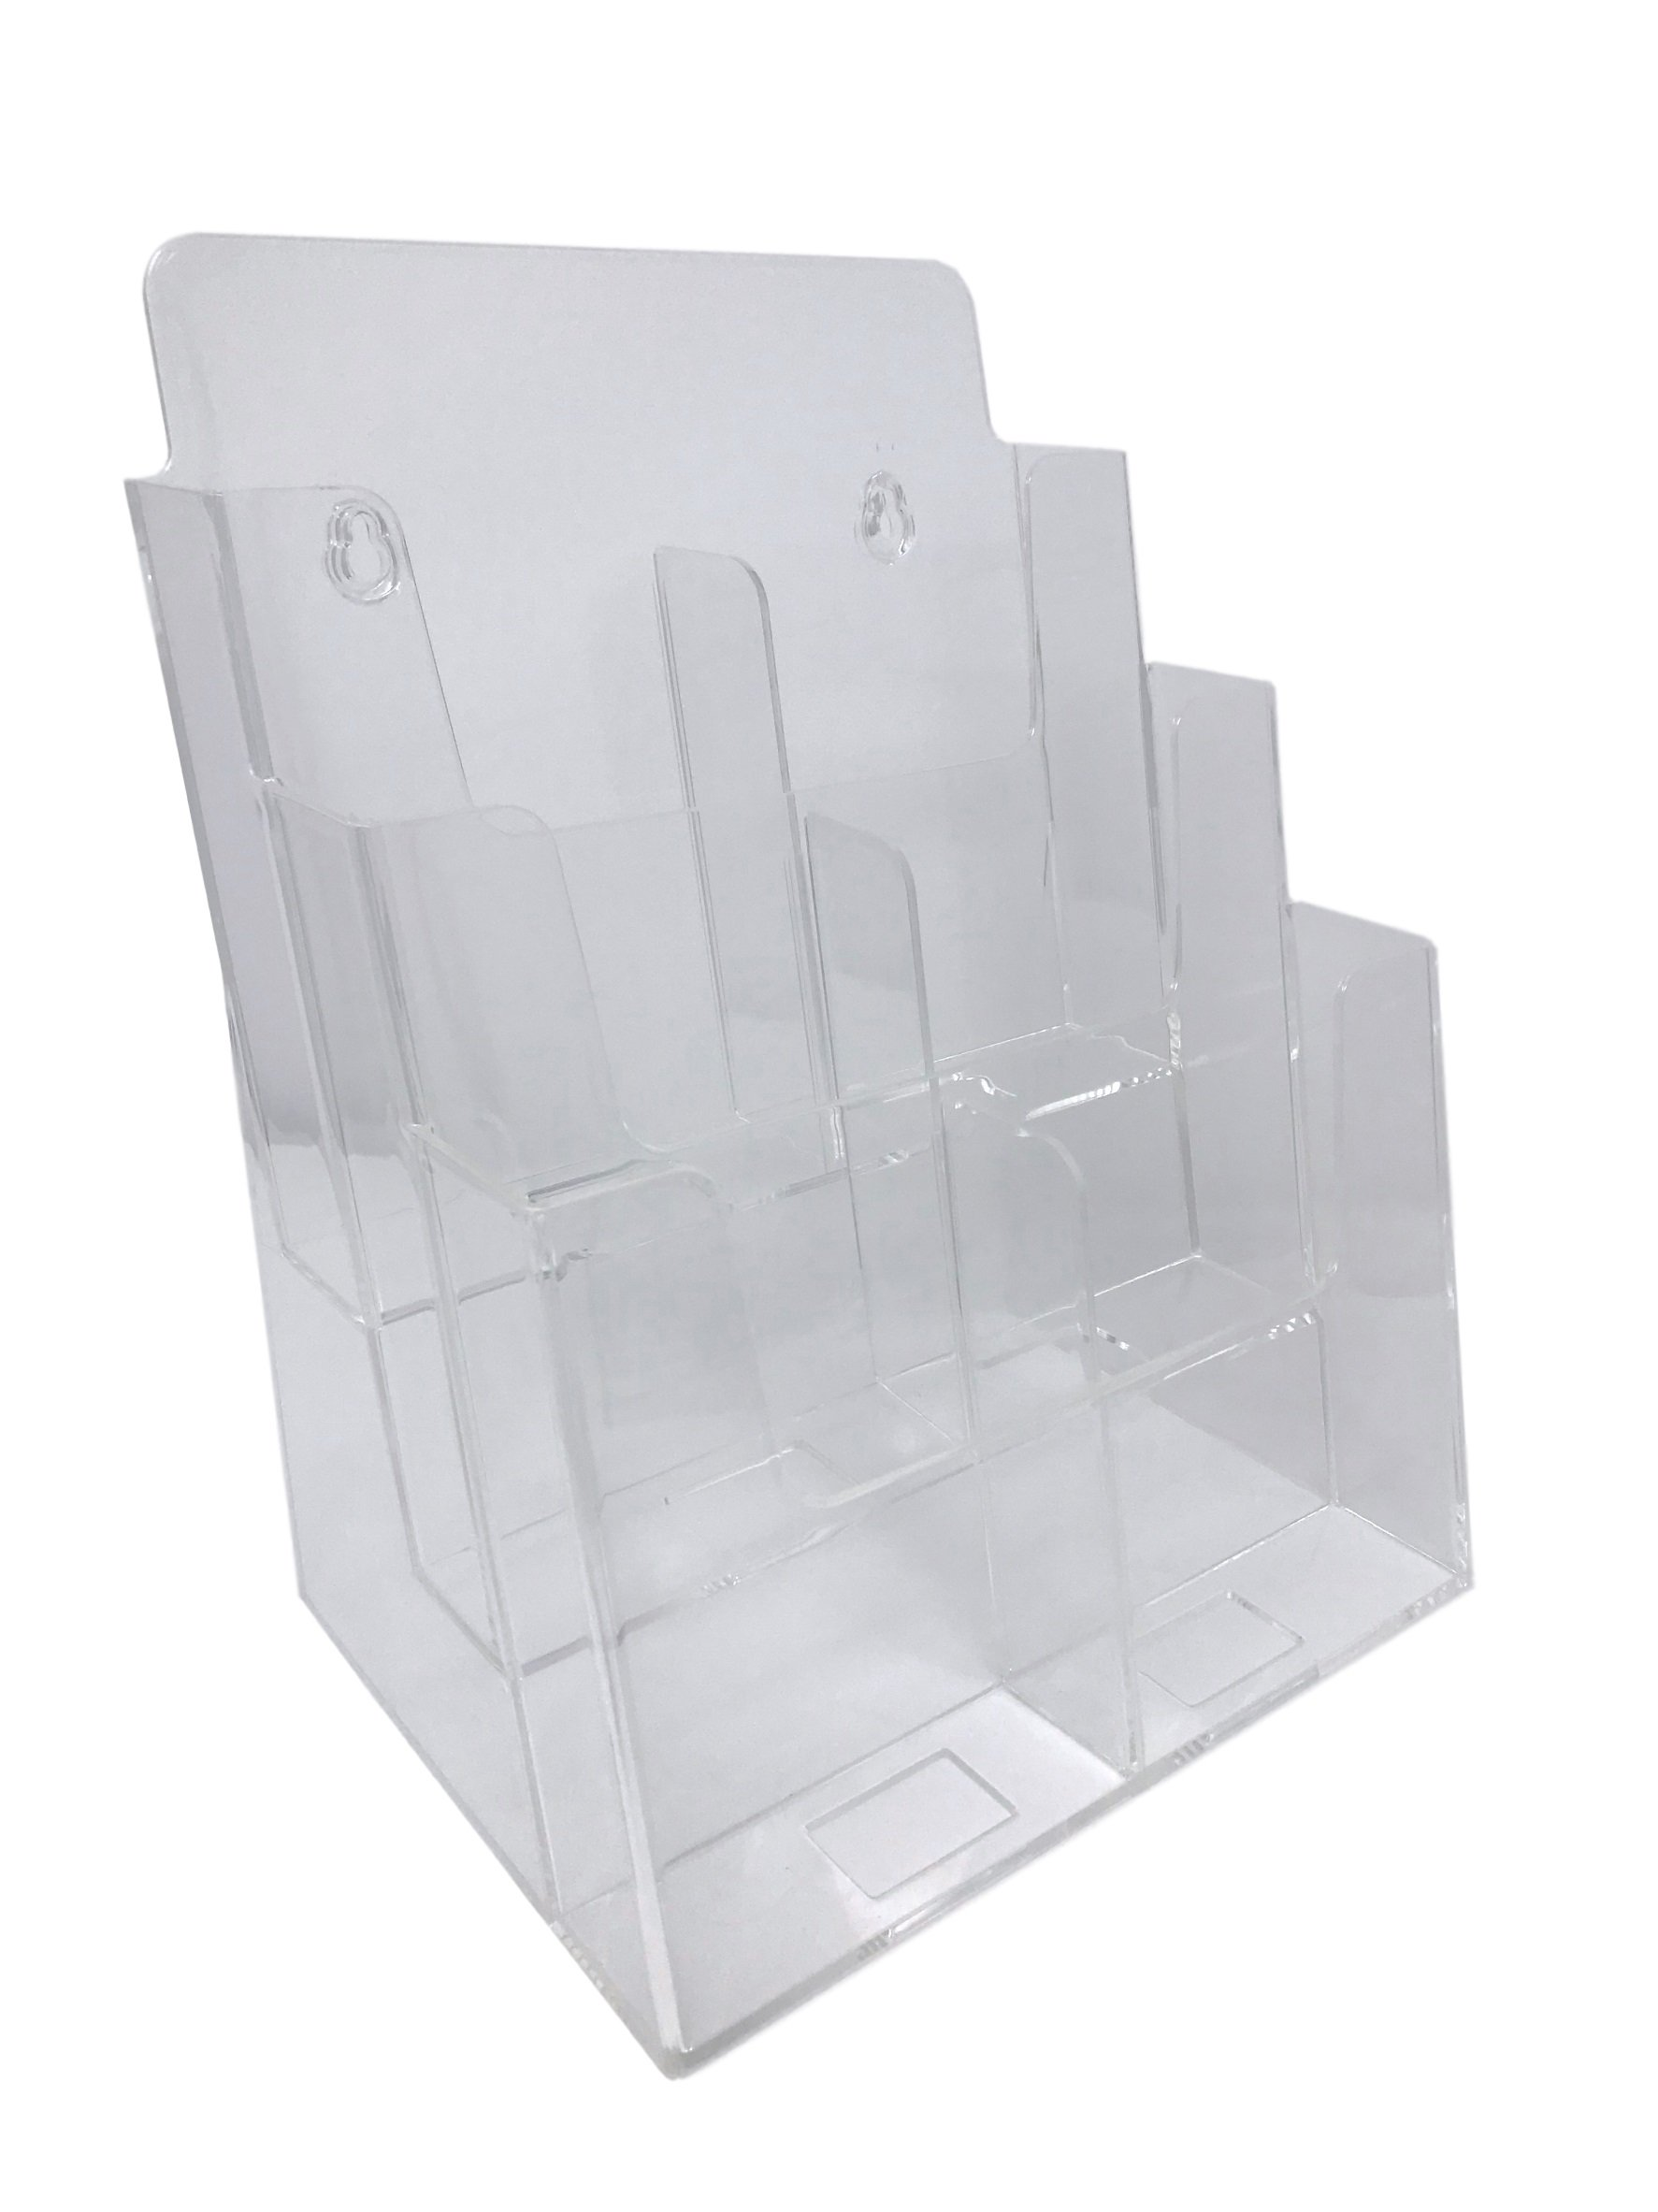 Dazzling Displays Clear Acrylic 3-Tier Brochure Holder for 8.5''w or 4''w Literature